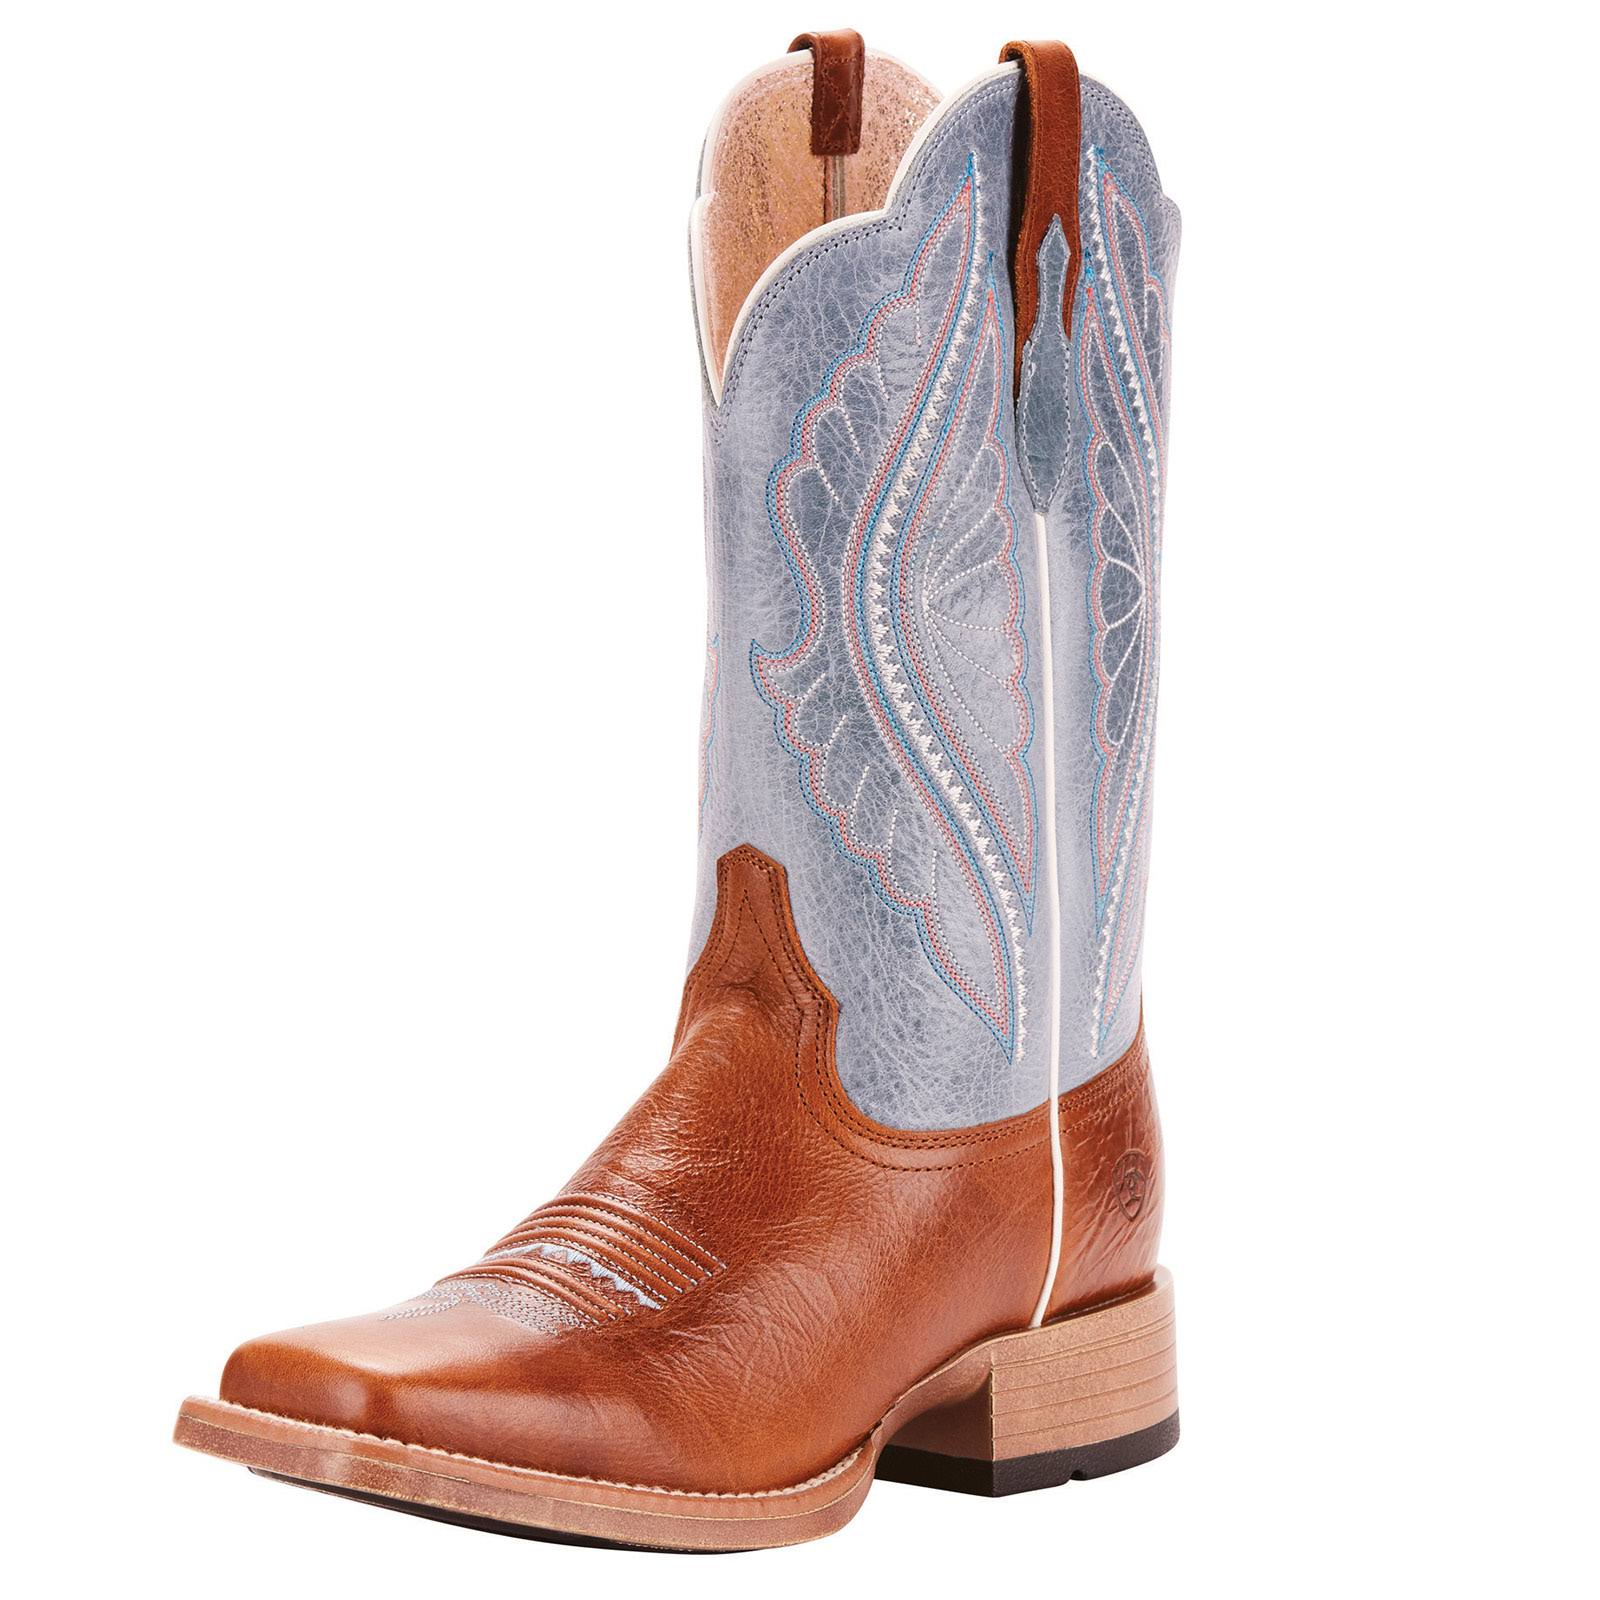 Ariat Primetime Western Boots - Gingersnap, 8.5US